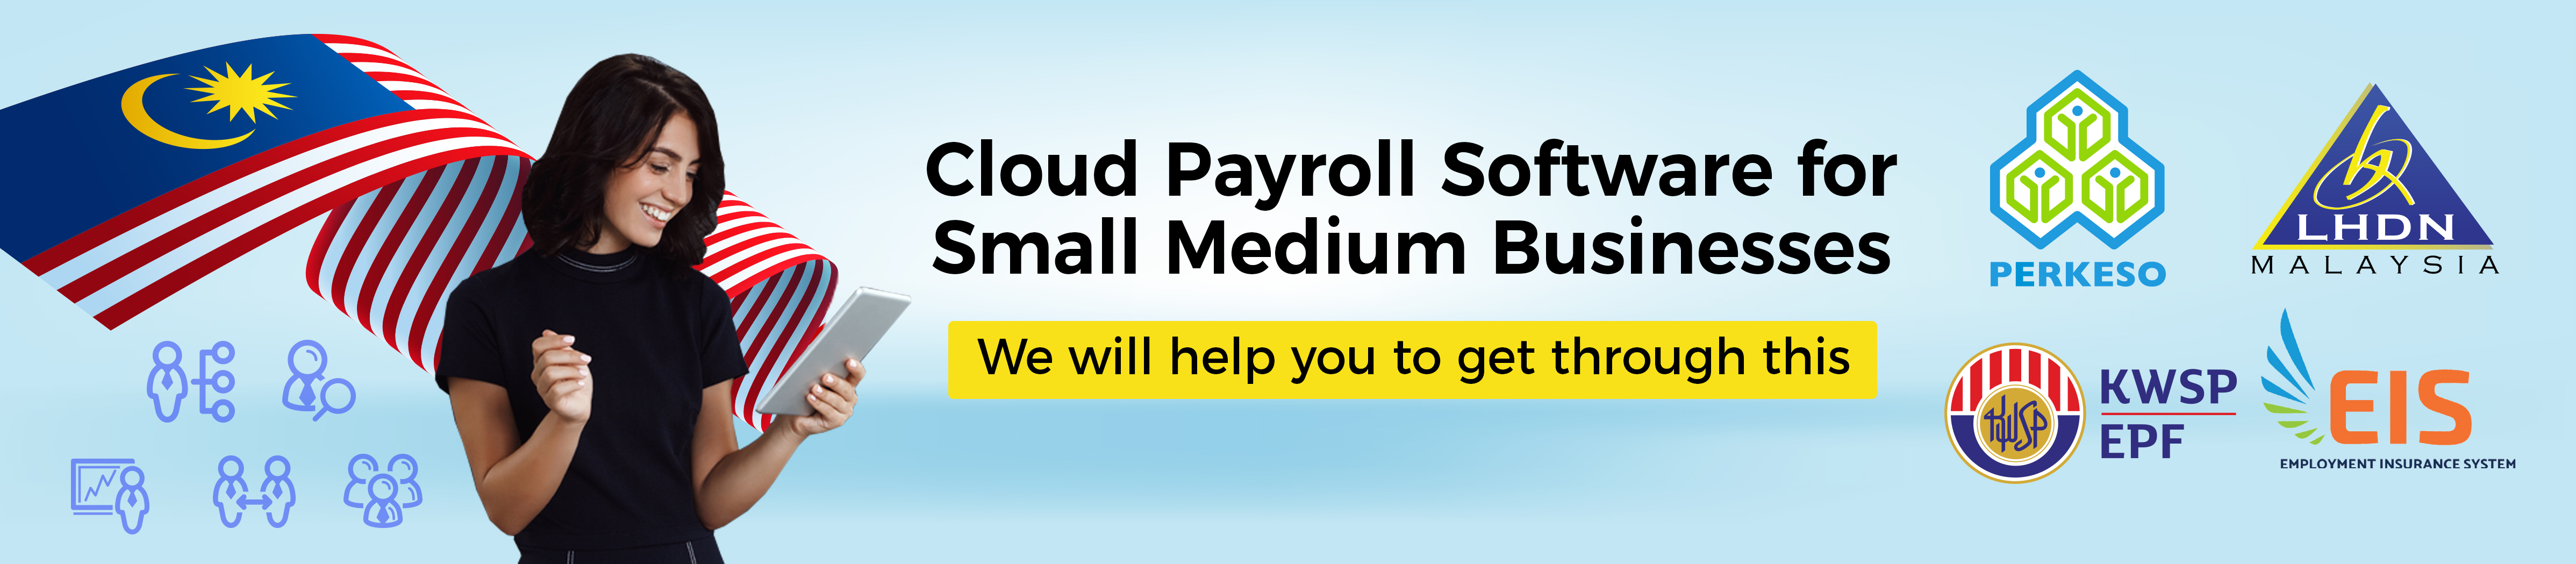 e-leave hrm system payroll